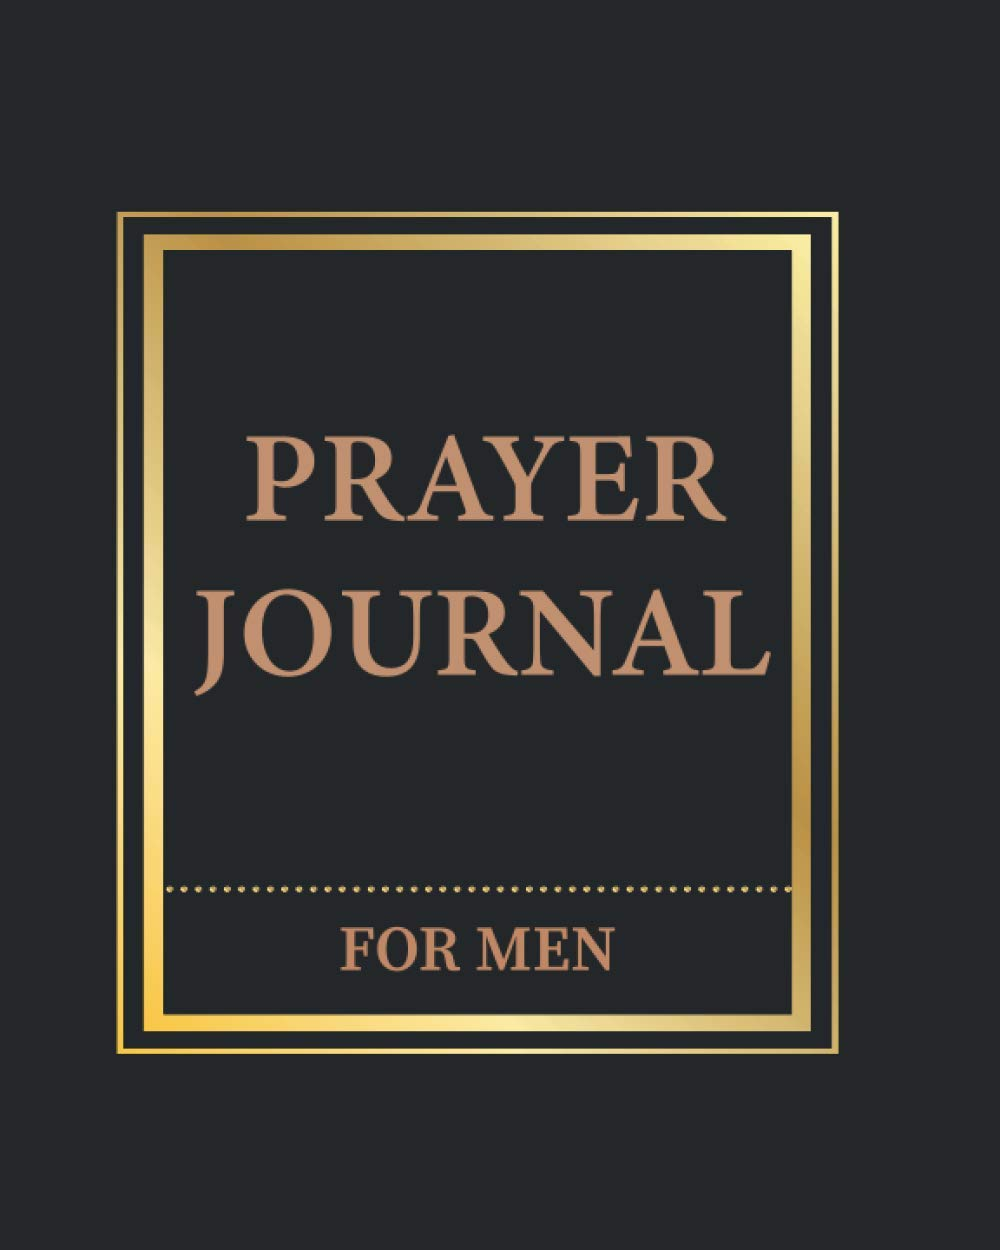 Daily Prayer Journal for Men: A Simple 100 Day Daily Prayer and Devotional Journal: A simple daily prayer journal designed to accompany your bible ... in writing.